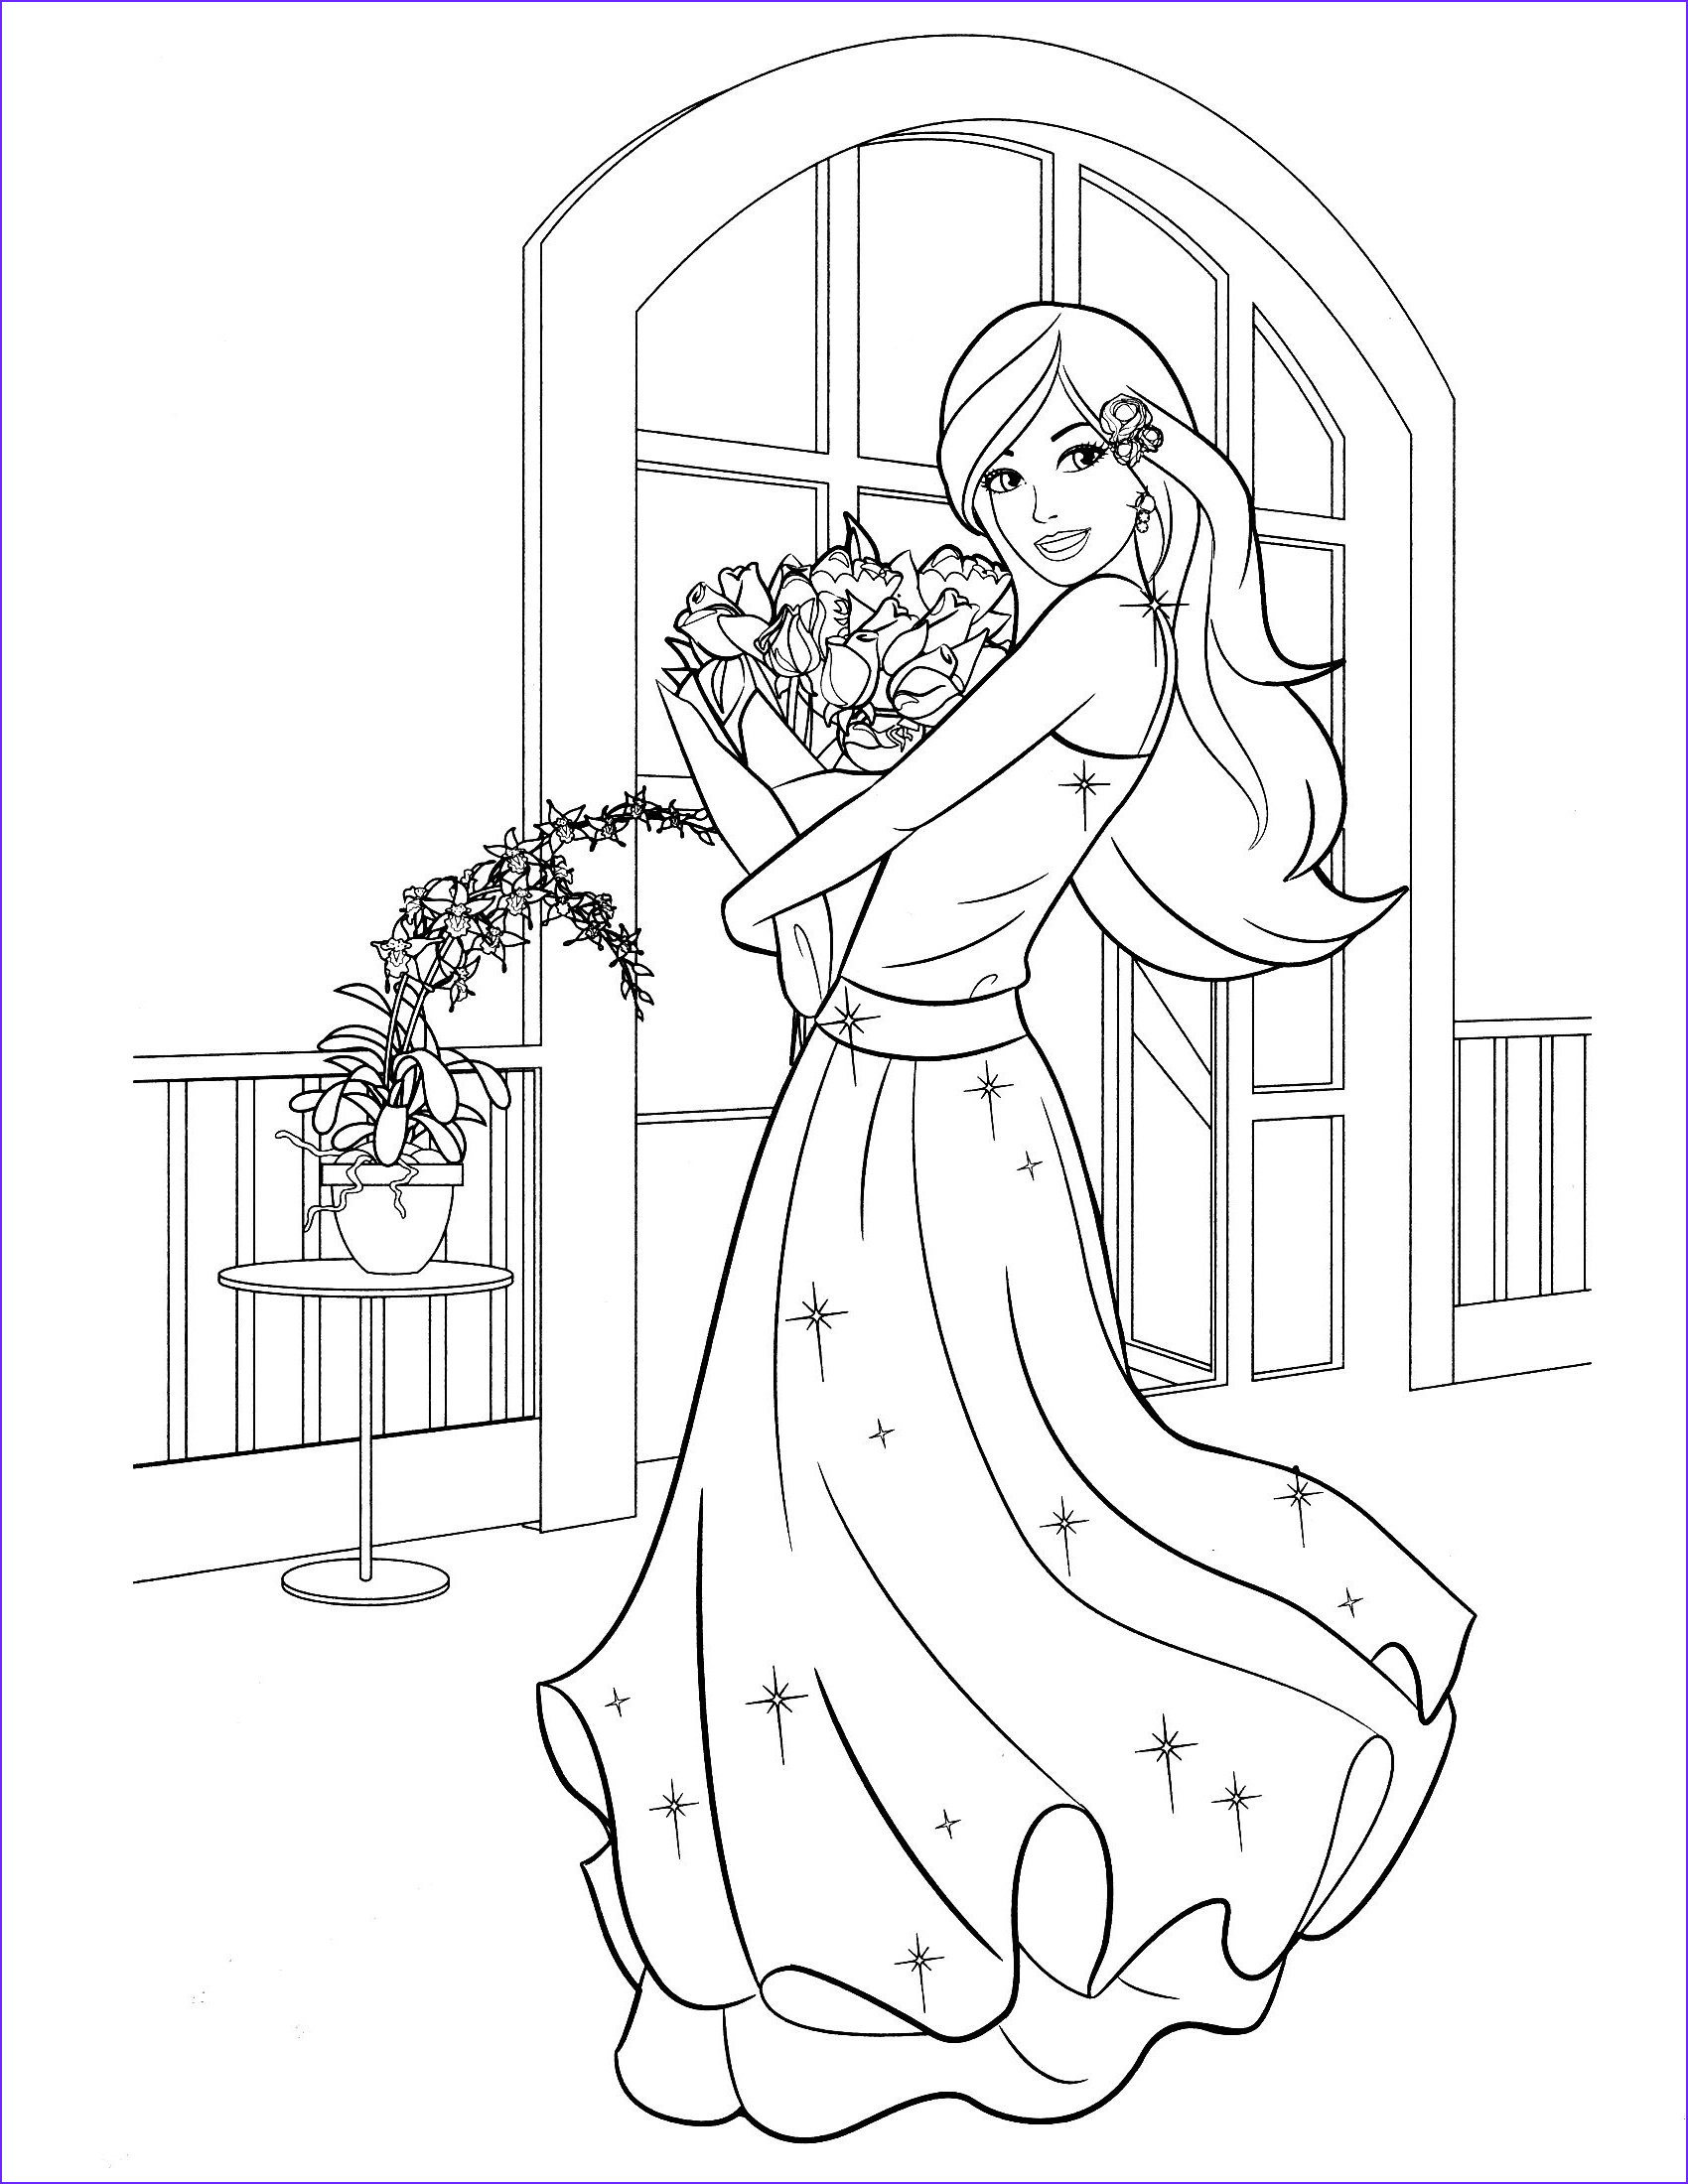 Barbie Coloring Books Best Of Images Free Printable Barbie Coloring Pages …